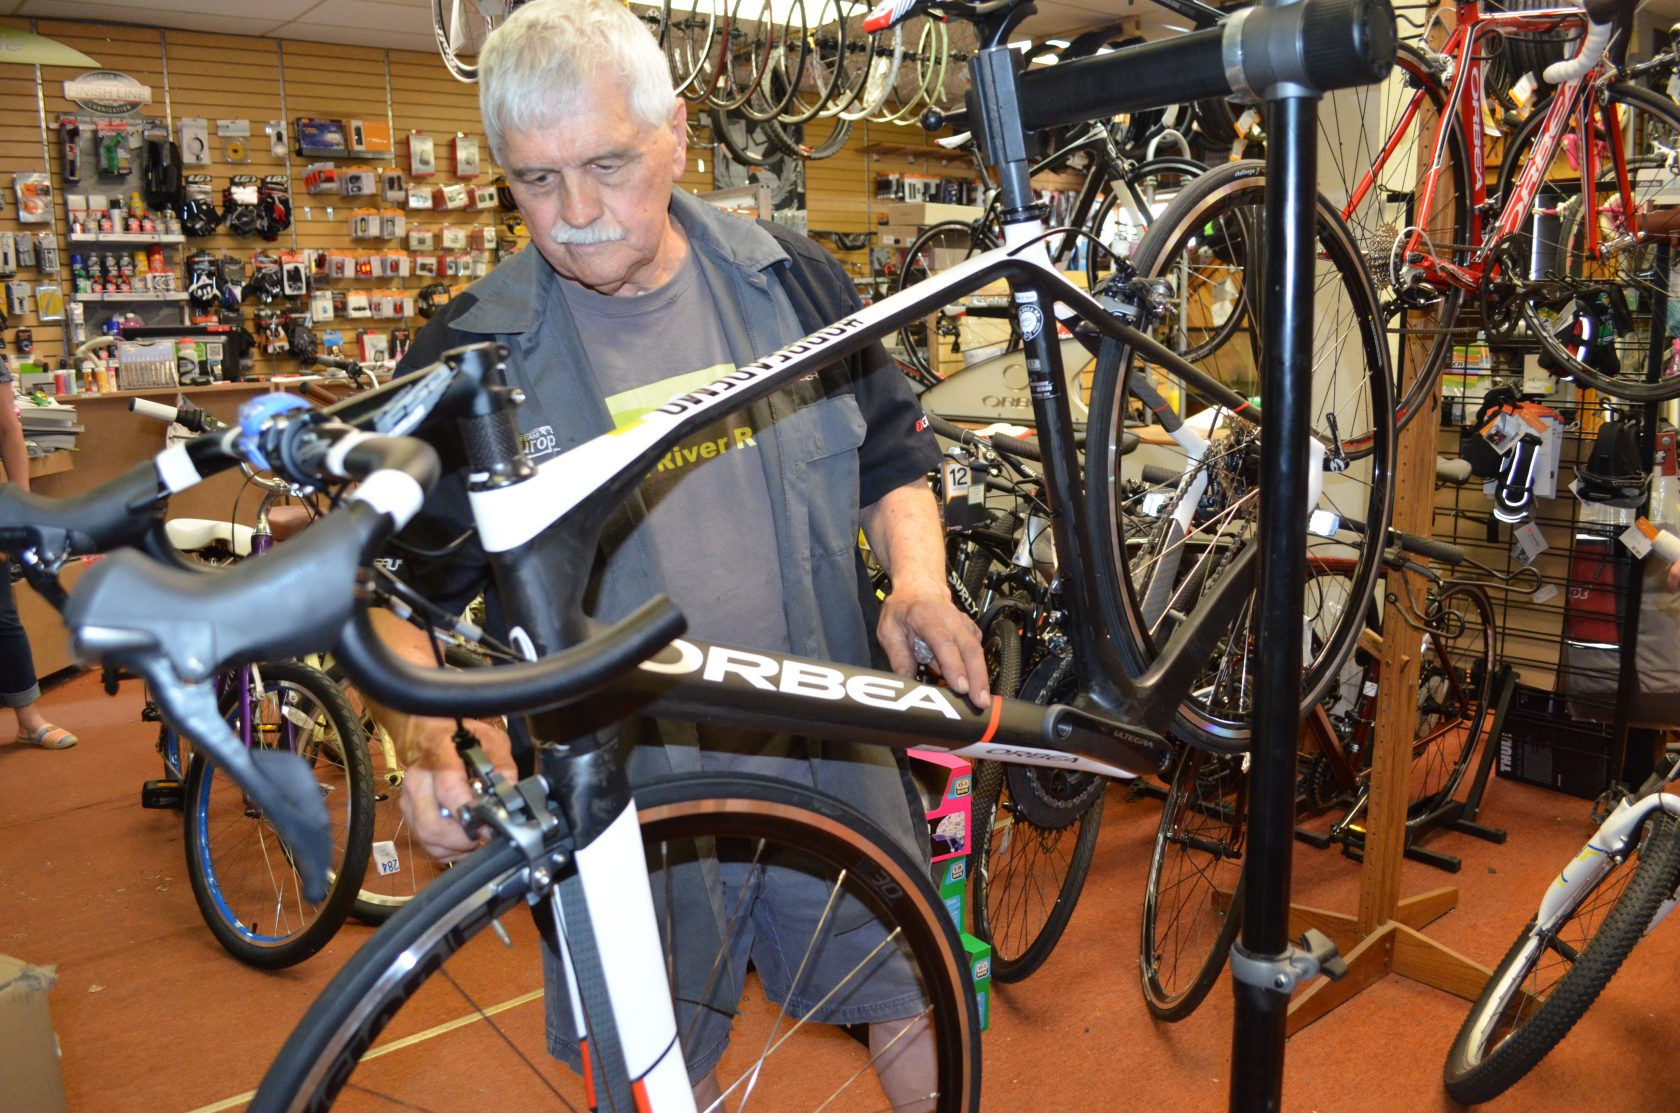 Bike Week to offer community events to residents